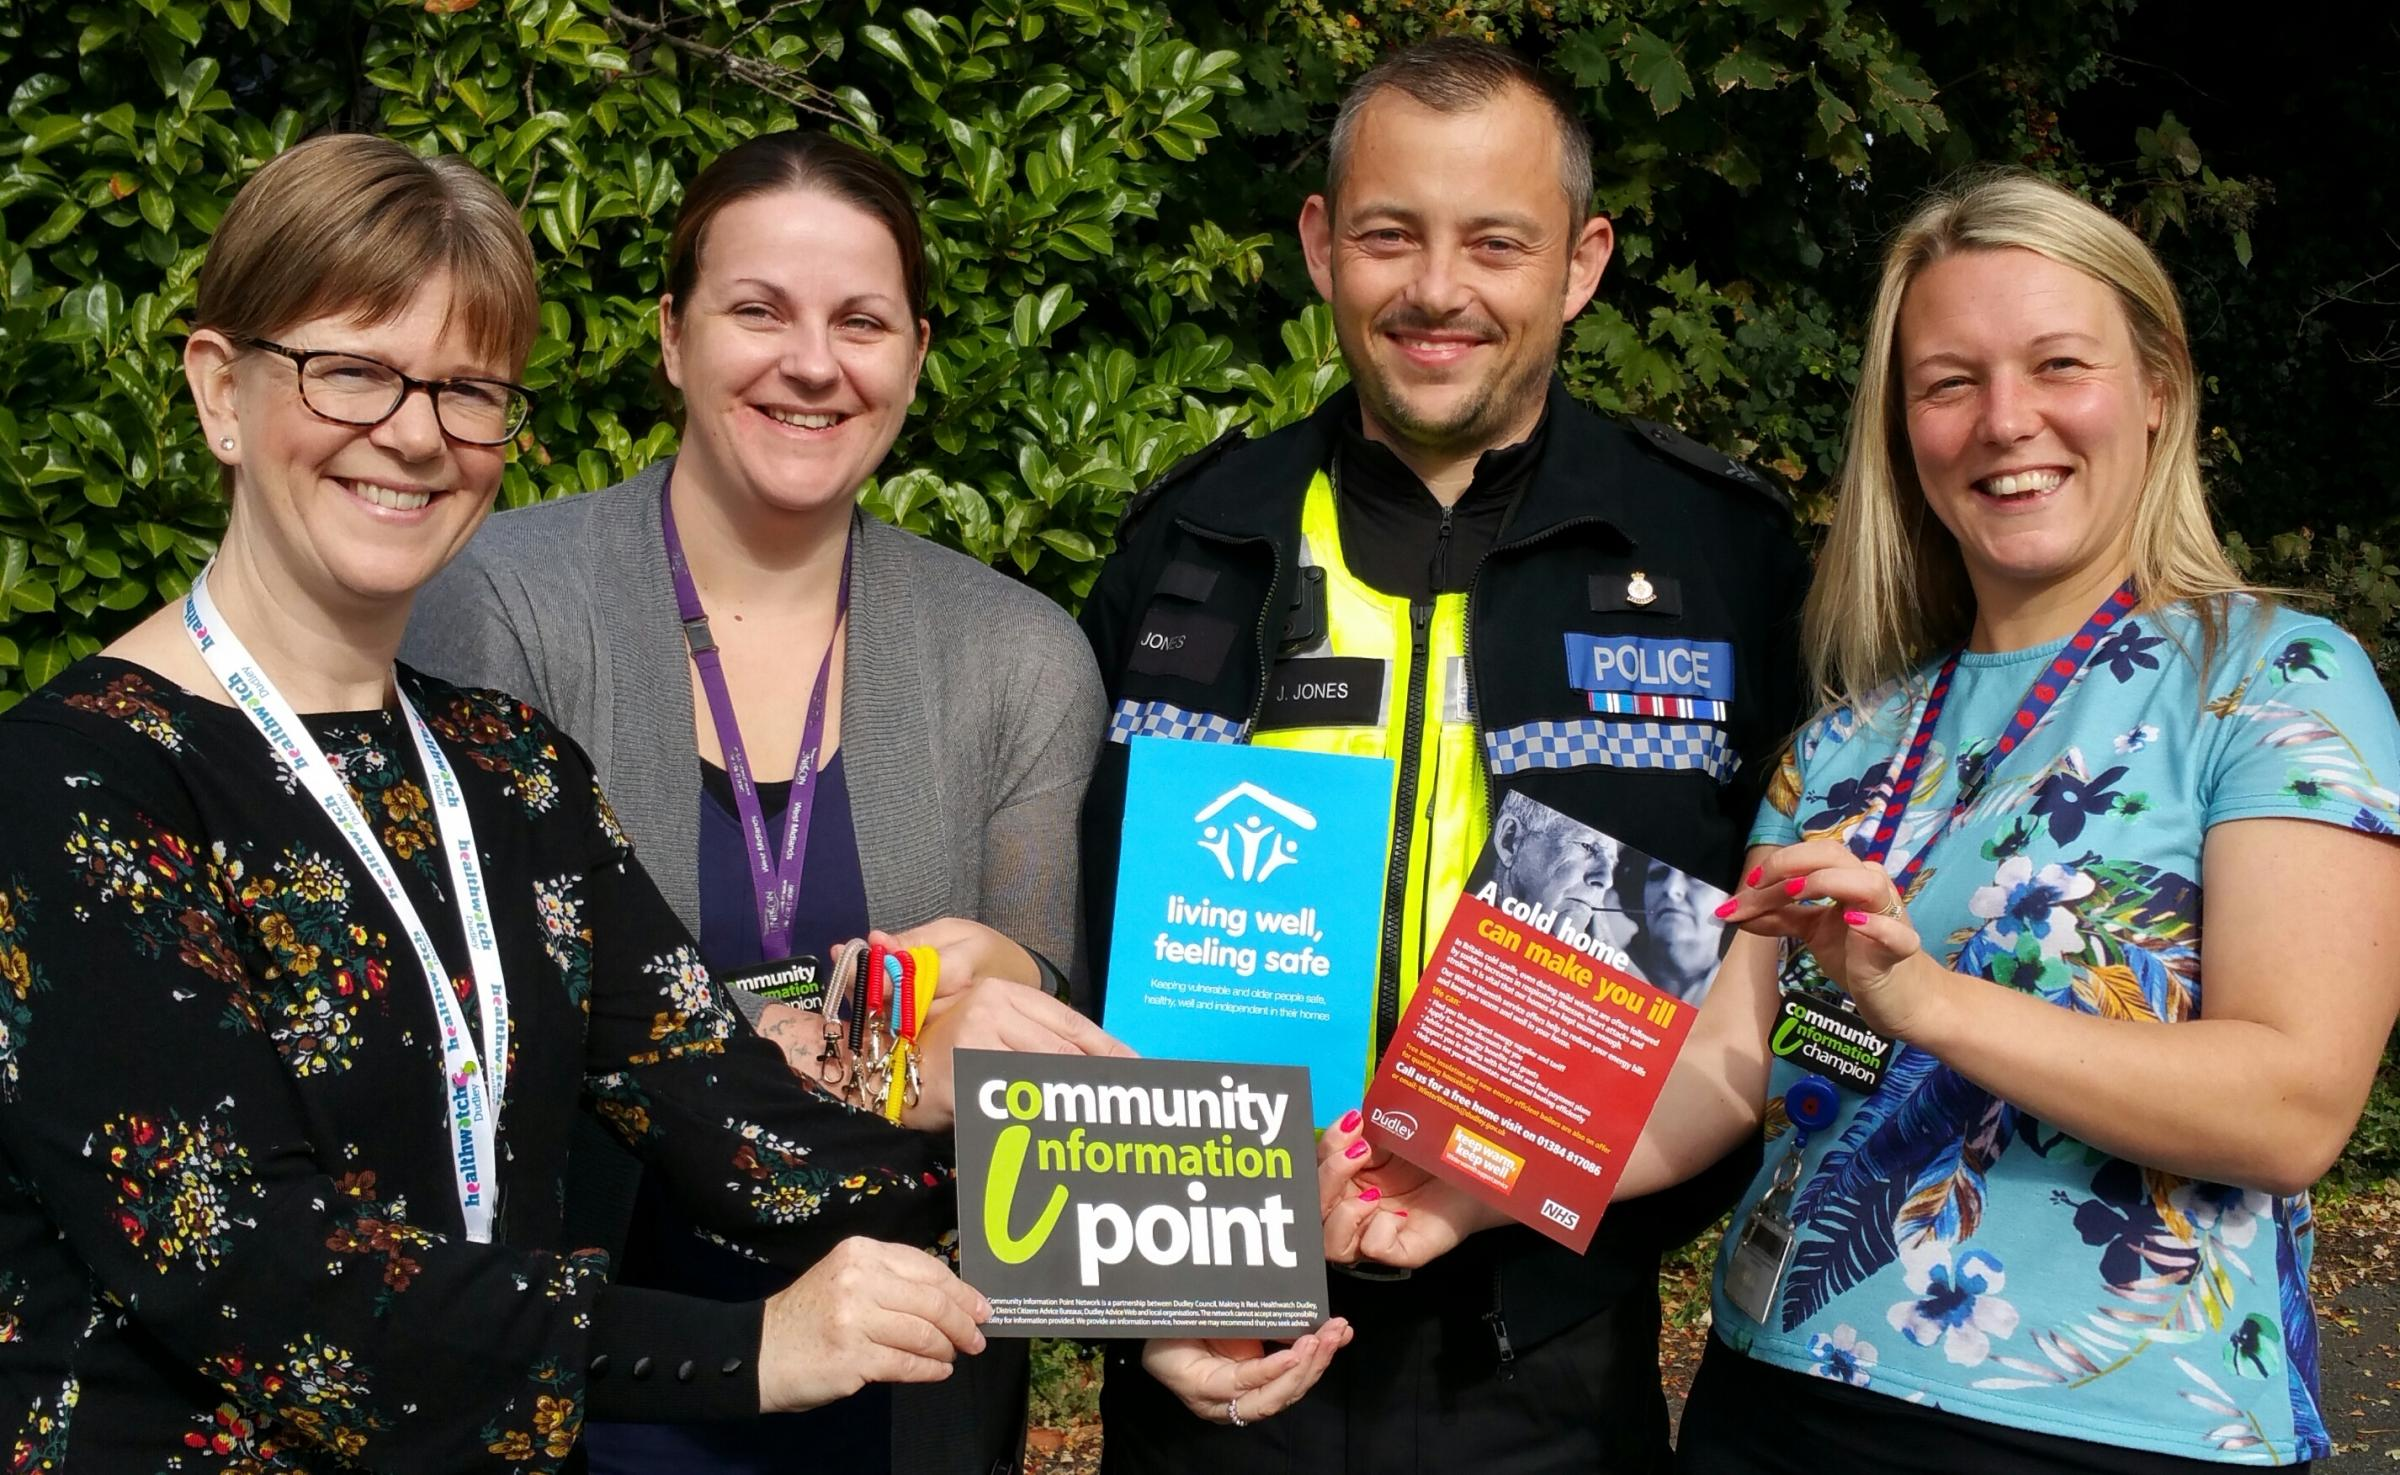 L-R: Sarah Hill (Healthwatch Dudley), Gemma Bradley (Living Well Feeling Safe), Sgt Jimmy Jones (Dudley Partnerships Team) and Charlotte Bennett ( Dudley Council's Winter Warmth Service)